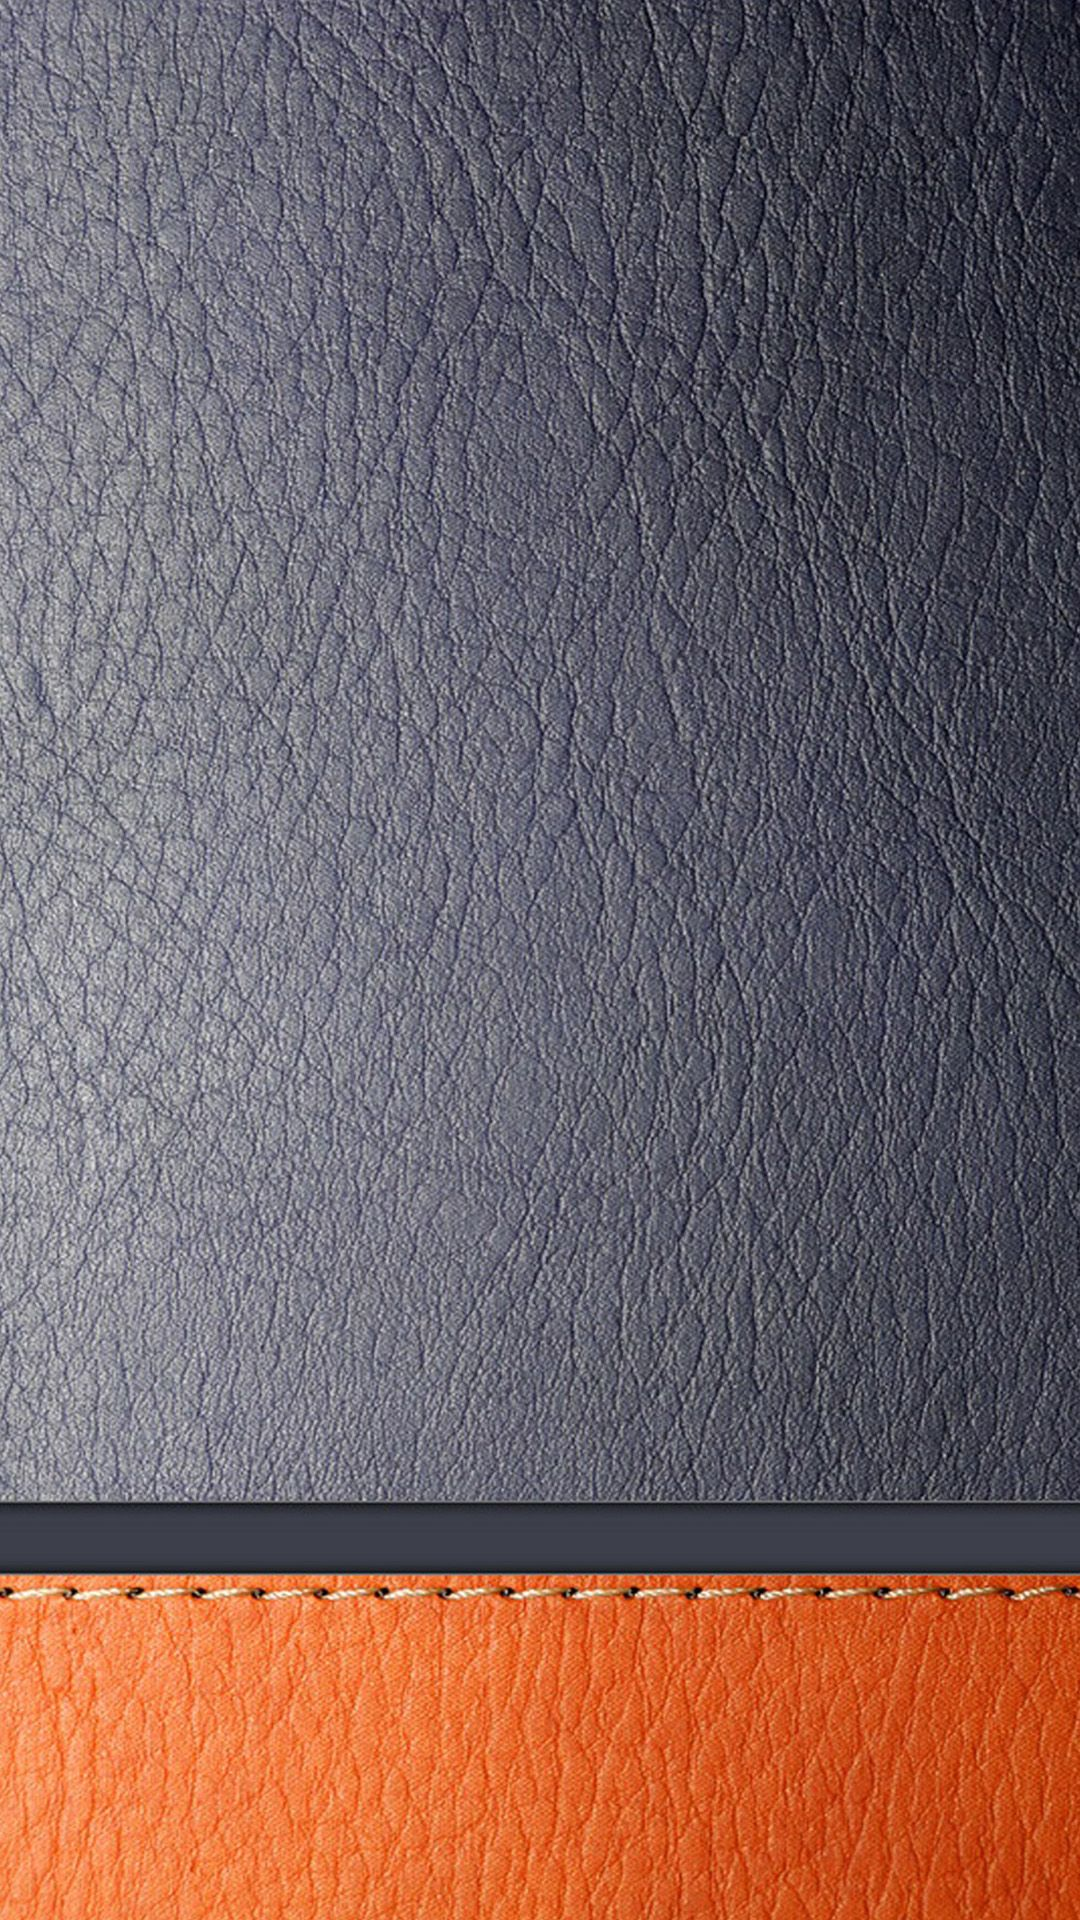 Textures Wallpapers For Iphone 6 Plus 148 Iphone 6 Plus